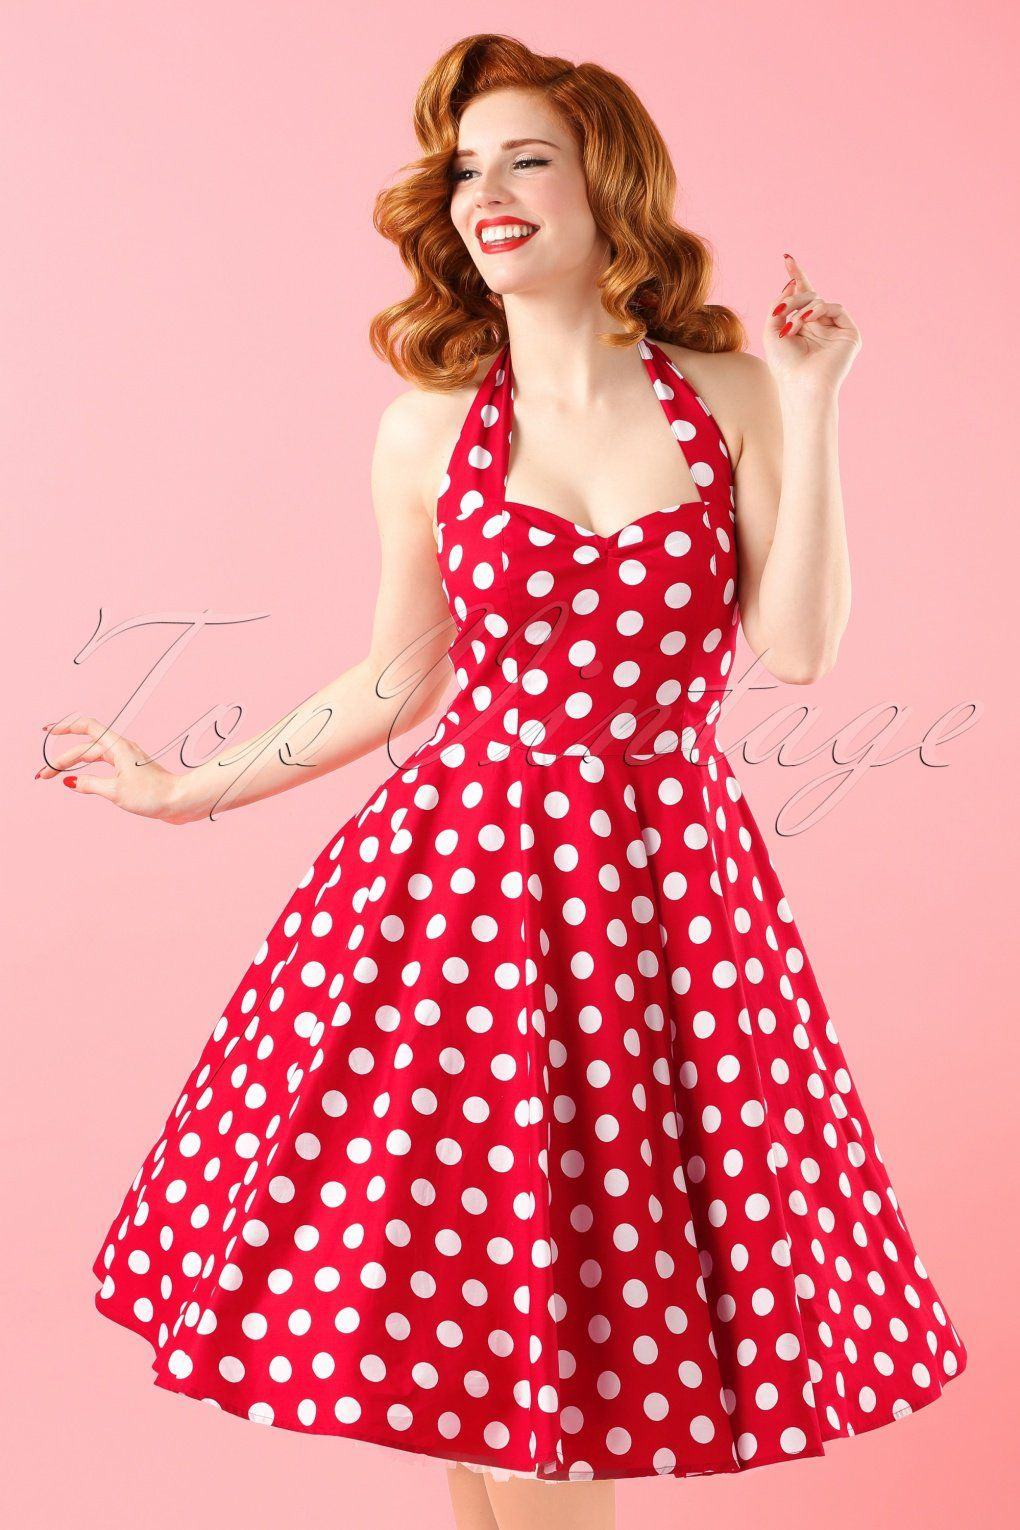 ecc760d01cf Vintage Polka Dot Dresses - 50s Spotty and Ditsy Prints in 2019 ...